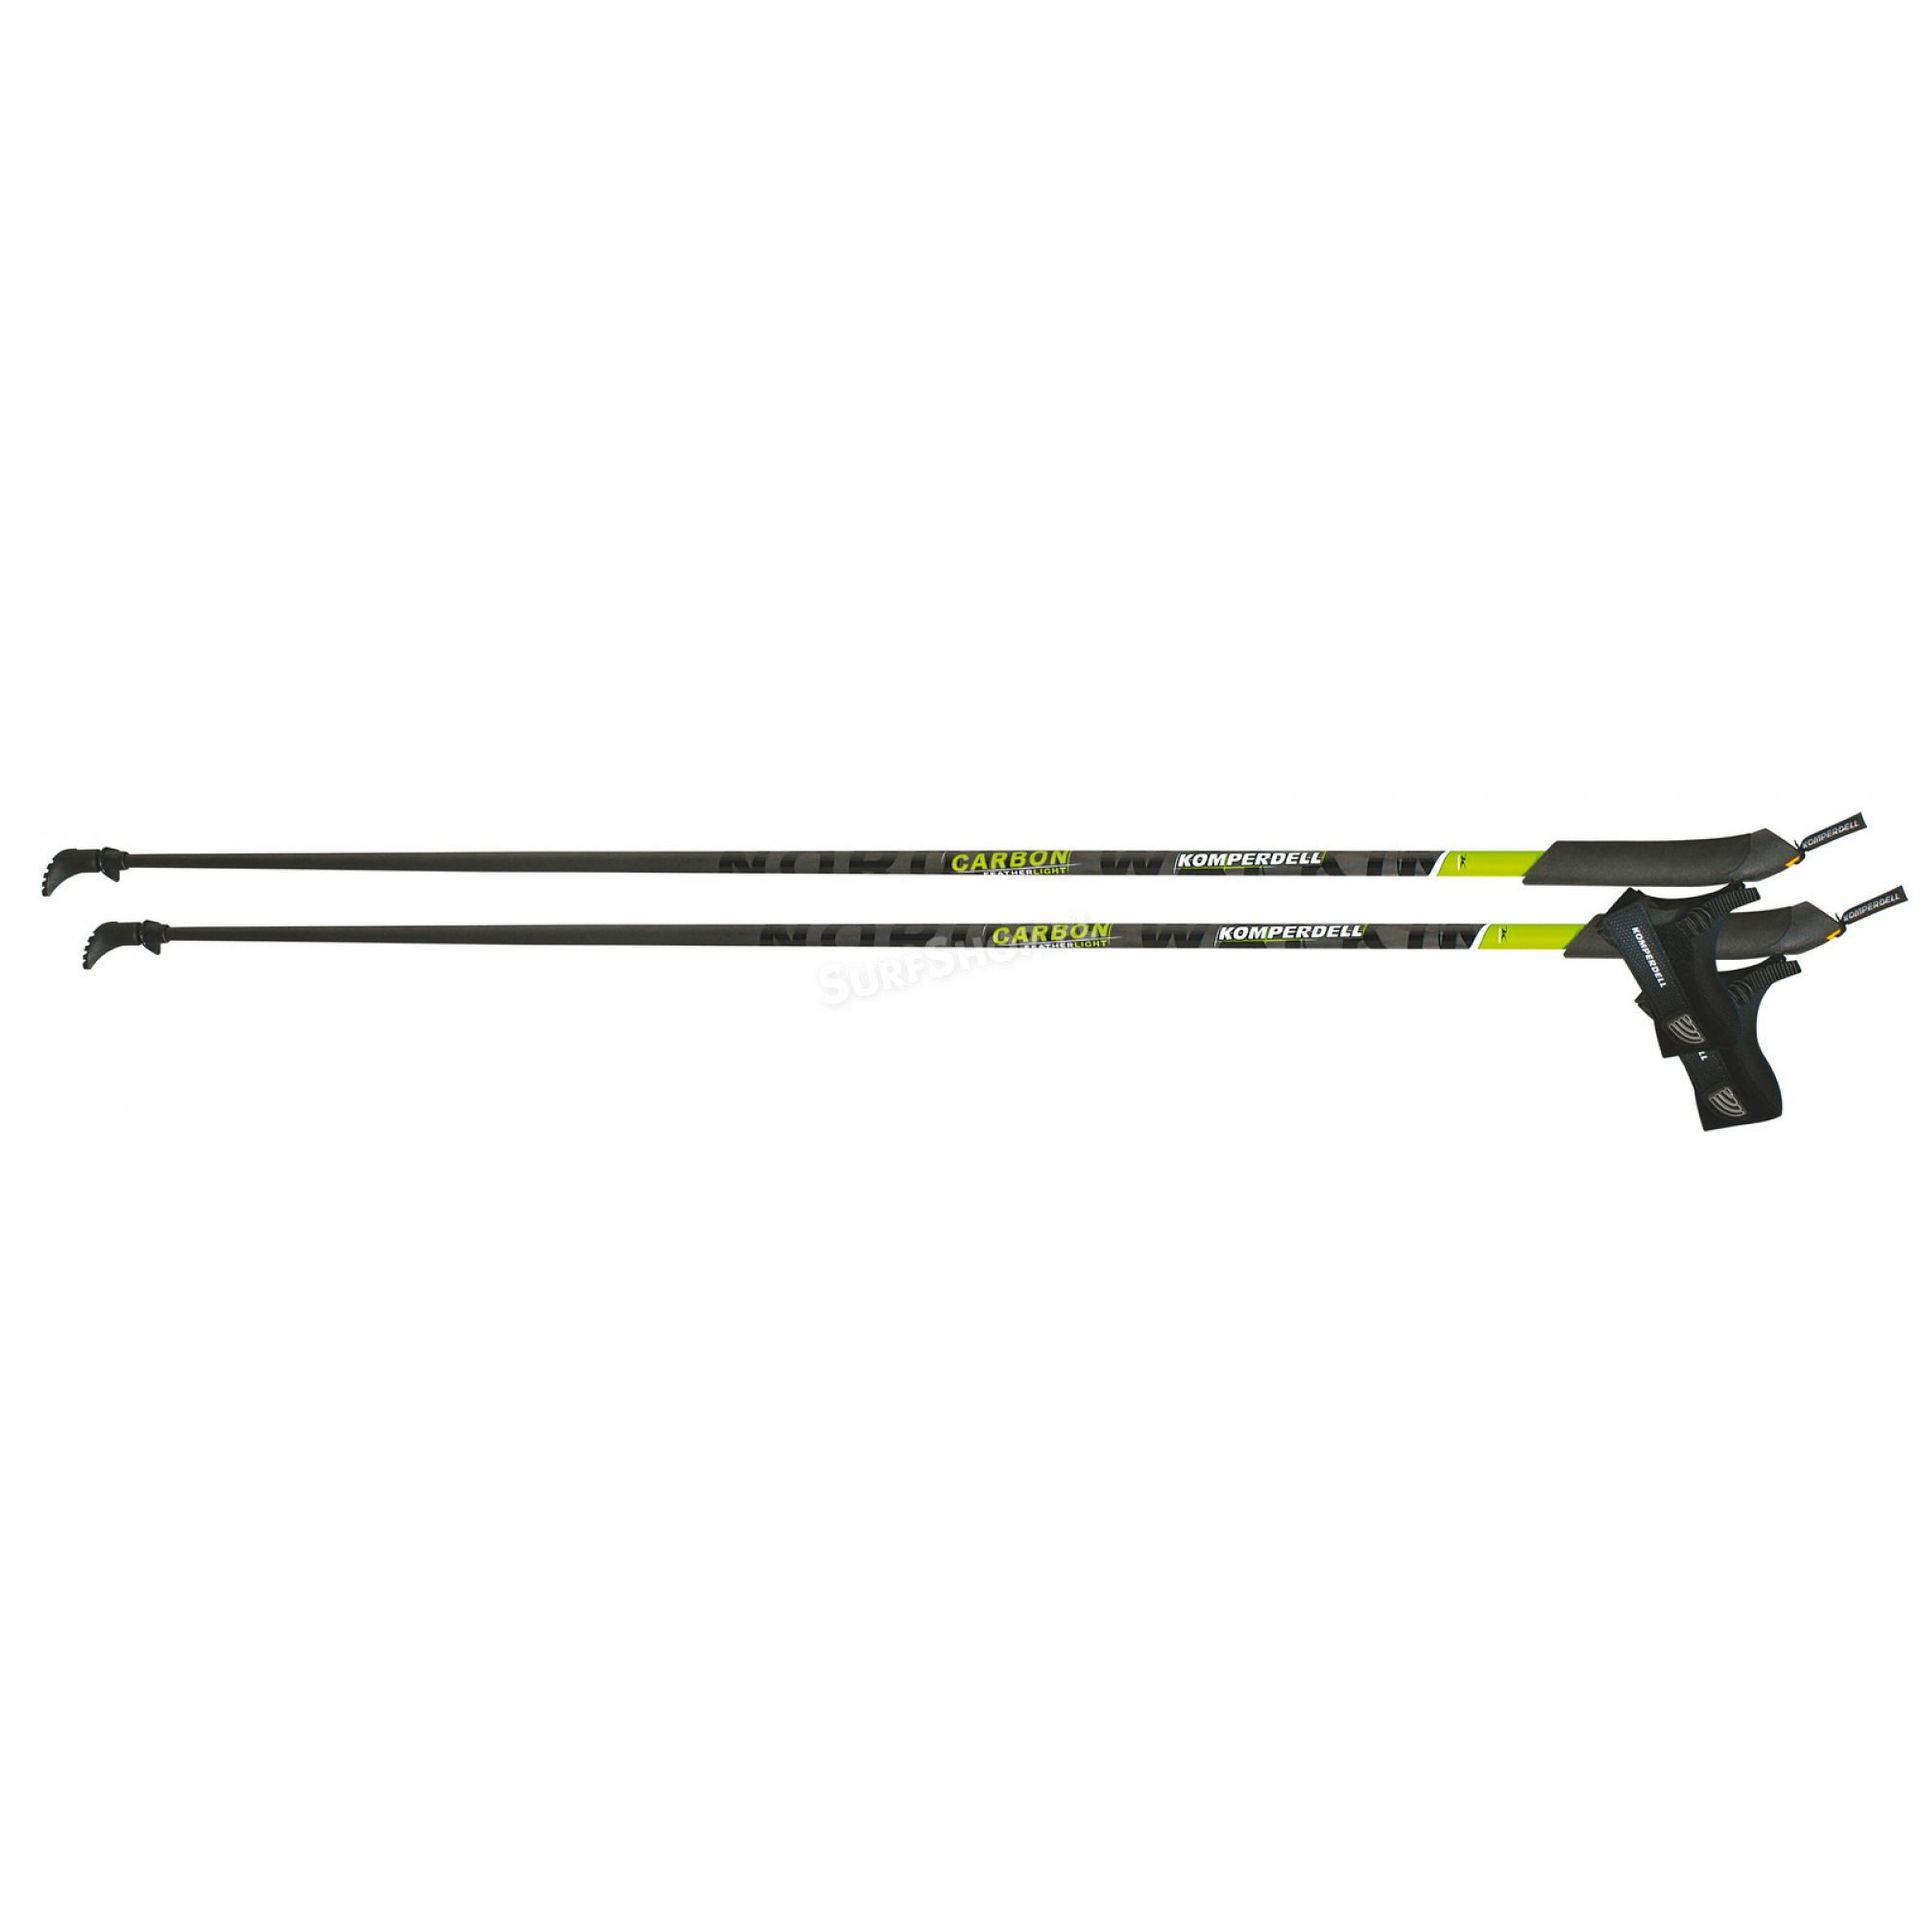 Kije Nordic Walking Komperdell Carbon Featherlight Foam